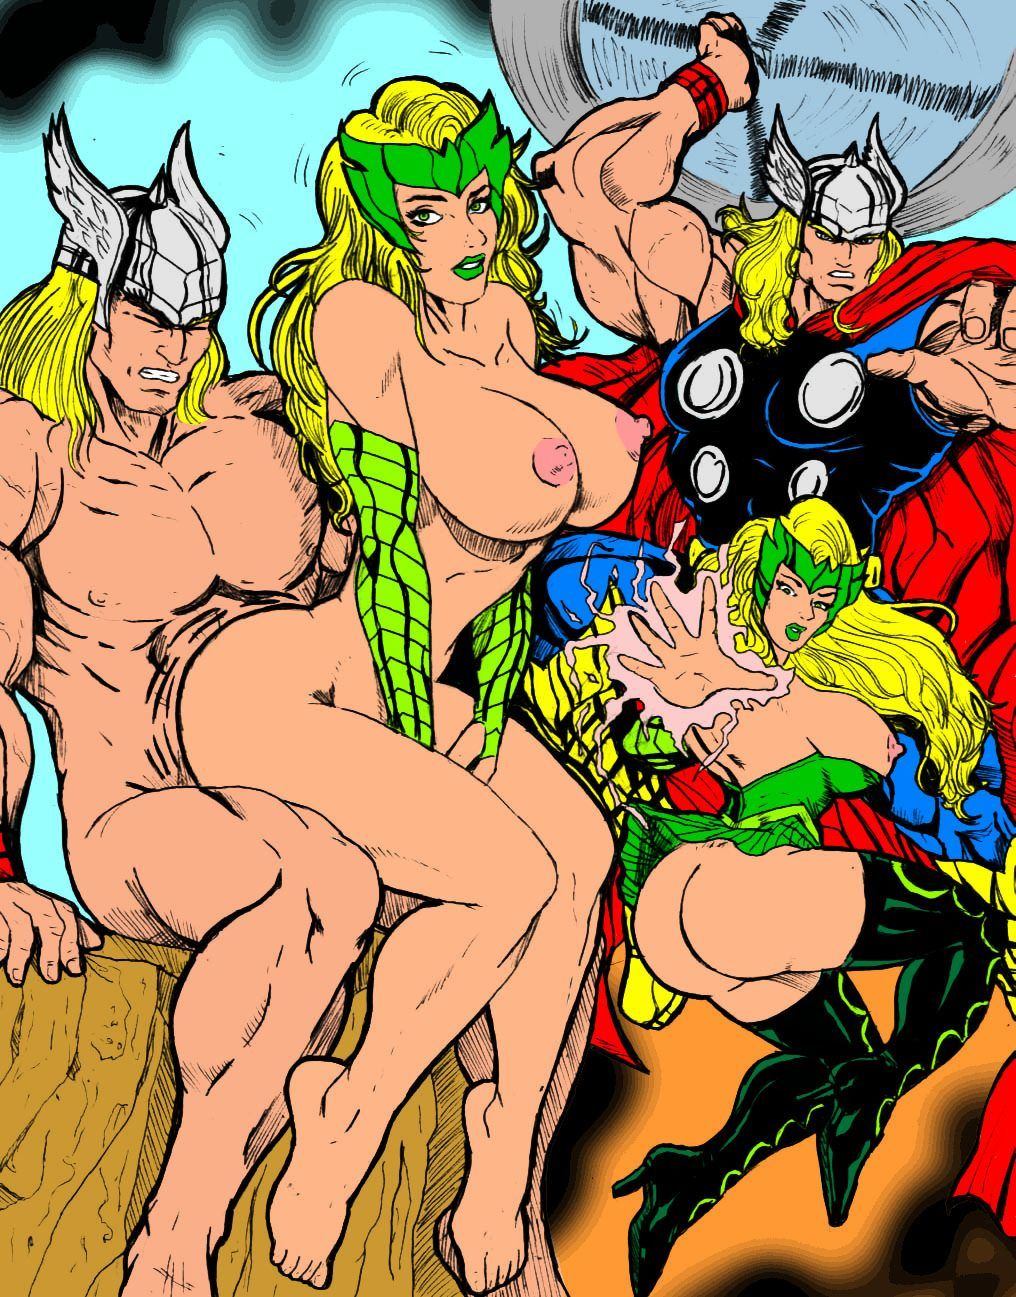 Marvel porno pictures nackt photo